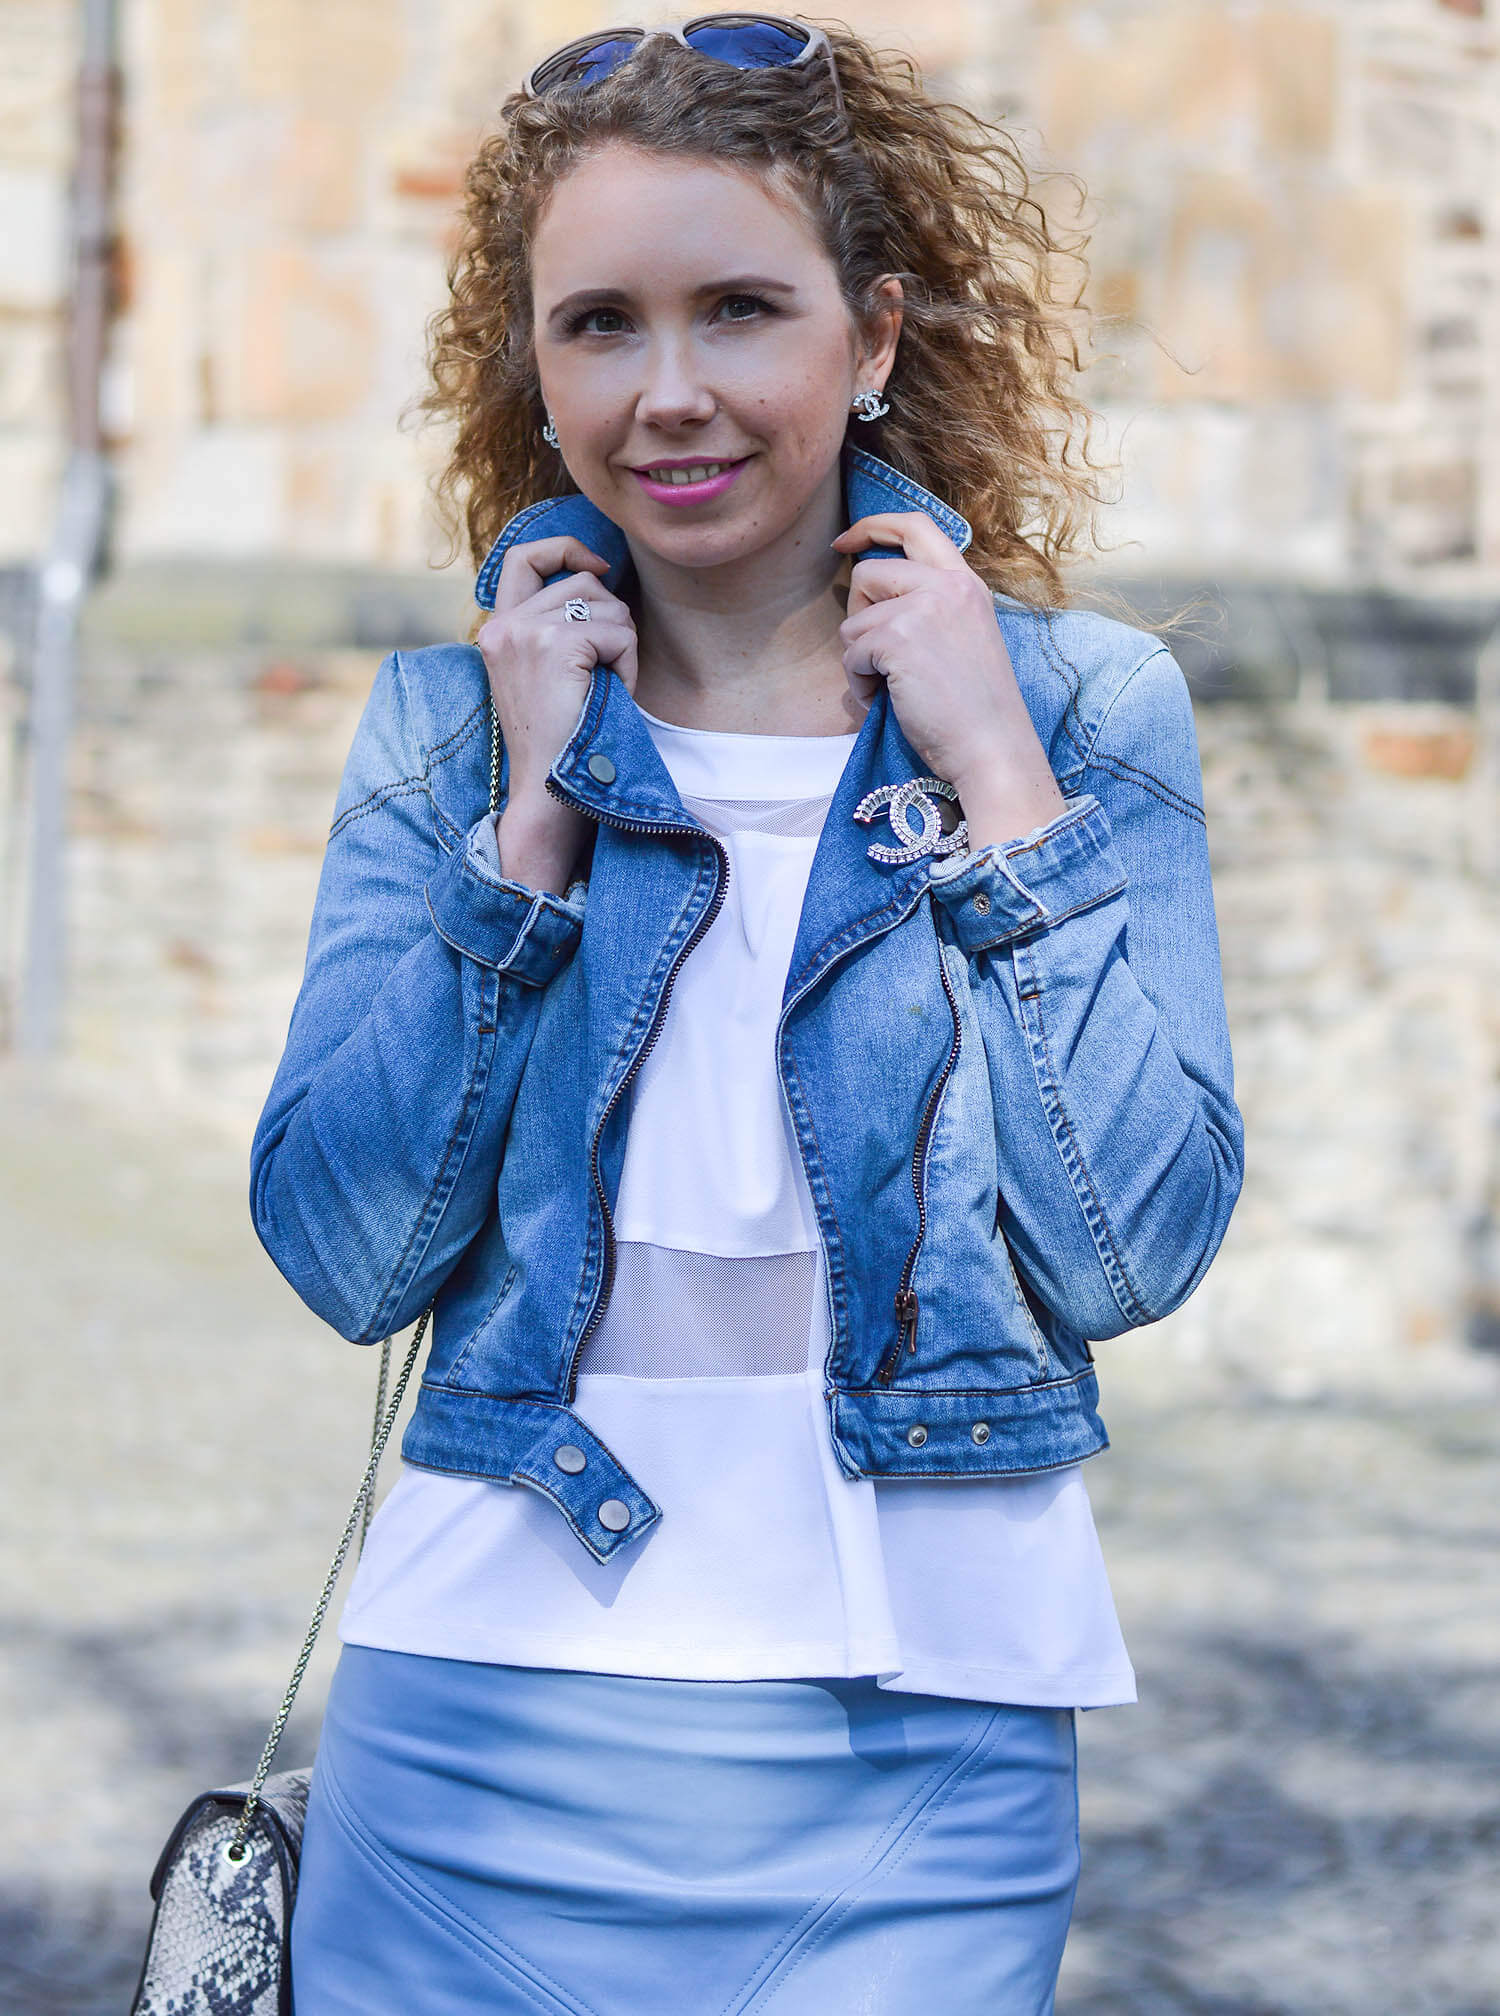 Kationette-fashionblog-nrw-outfit-white-and-blue-zara-chanel-spring-streetstyle